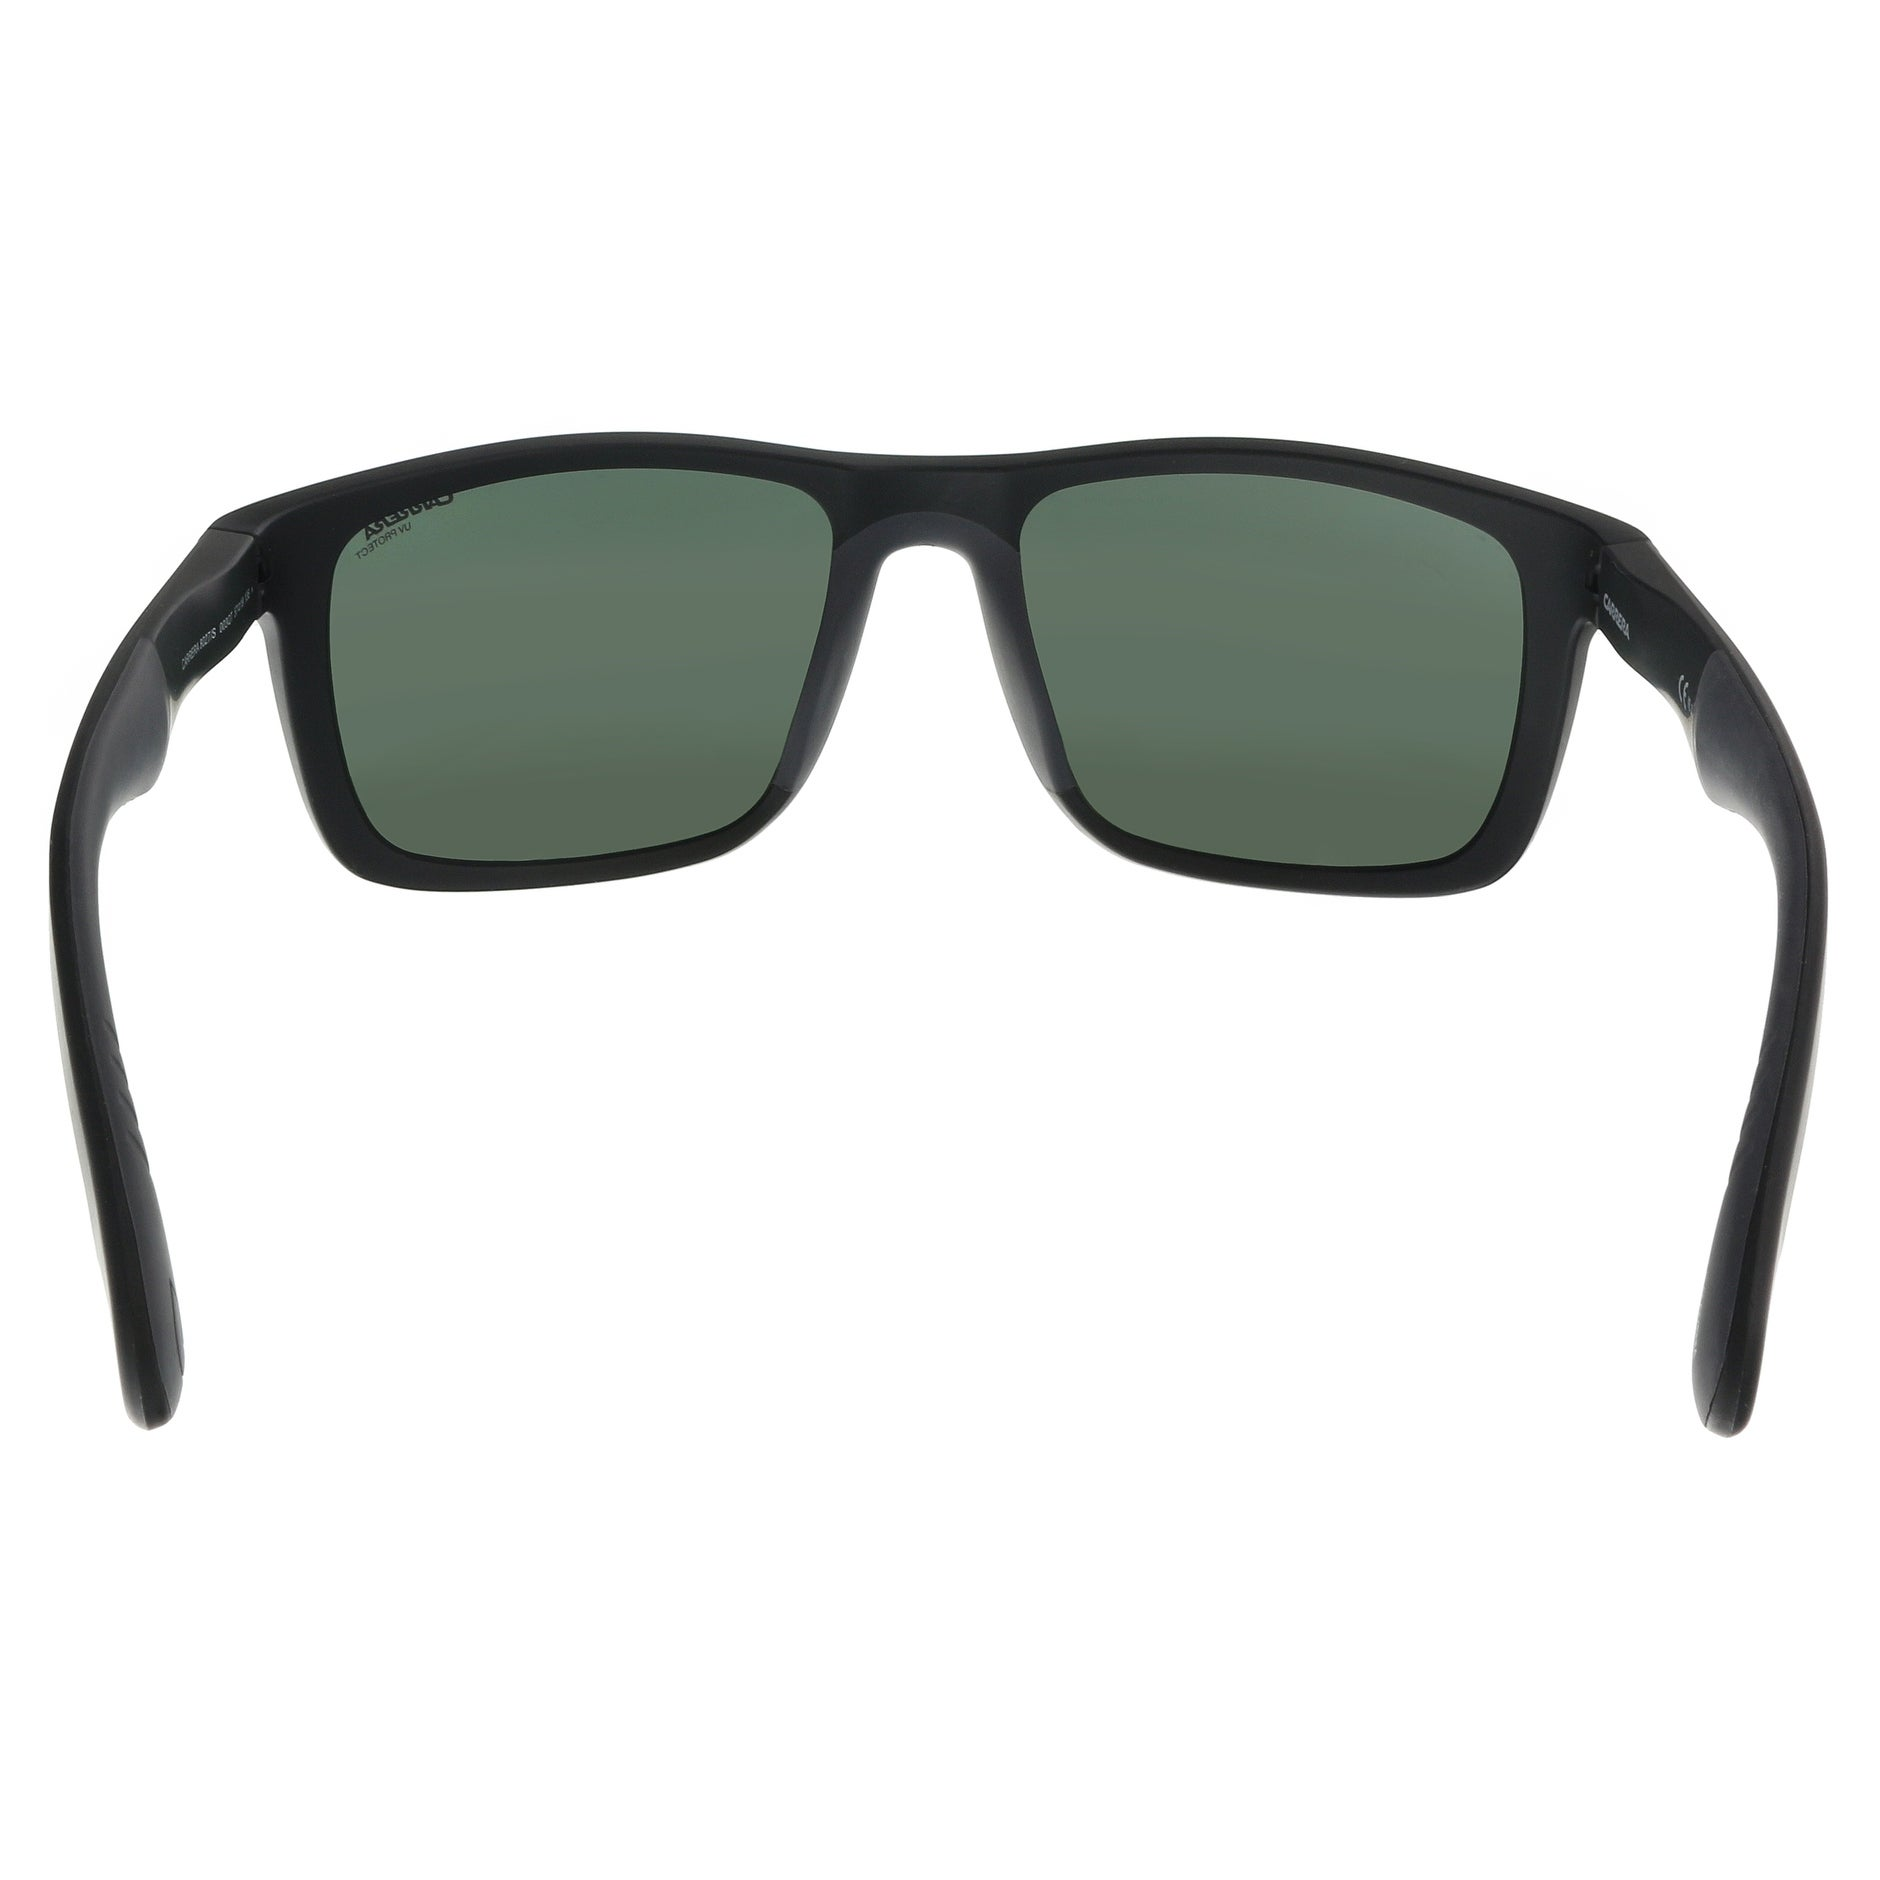 70eea47091344 Shop Carrera CARRERA 8027 S 0003-QT Matte Black Rectangle Sunglasses -  57-19-135 - Free Shipping Today - Overstock - 21158684